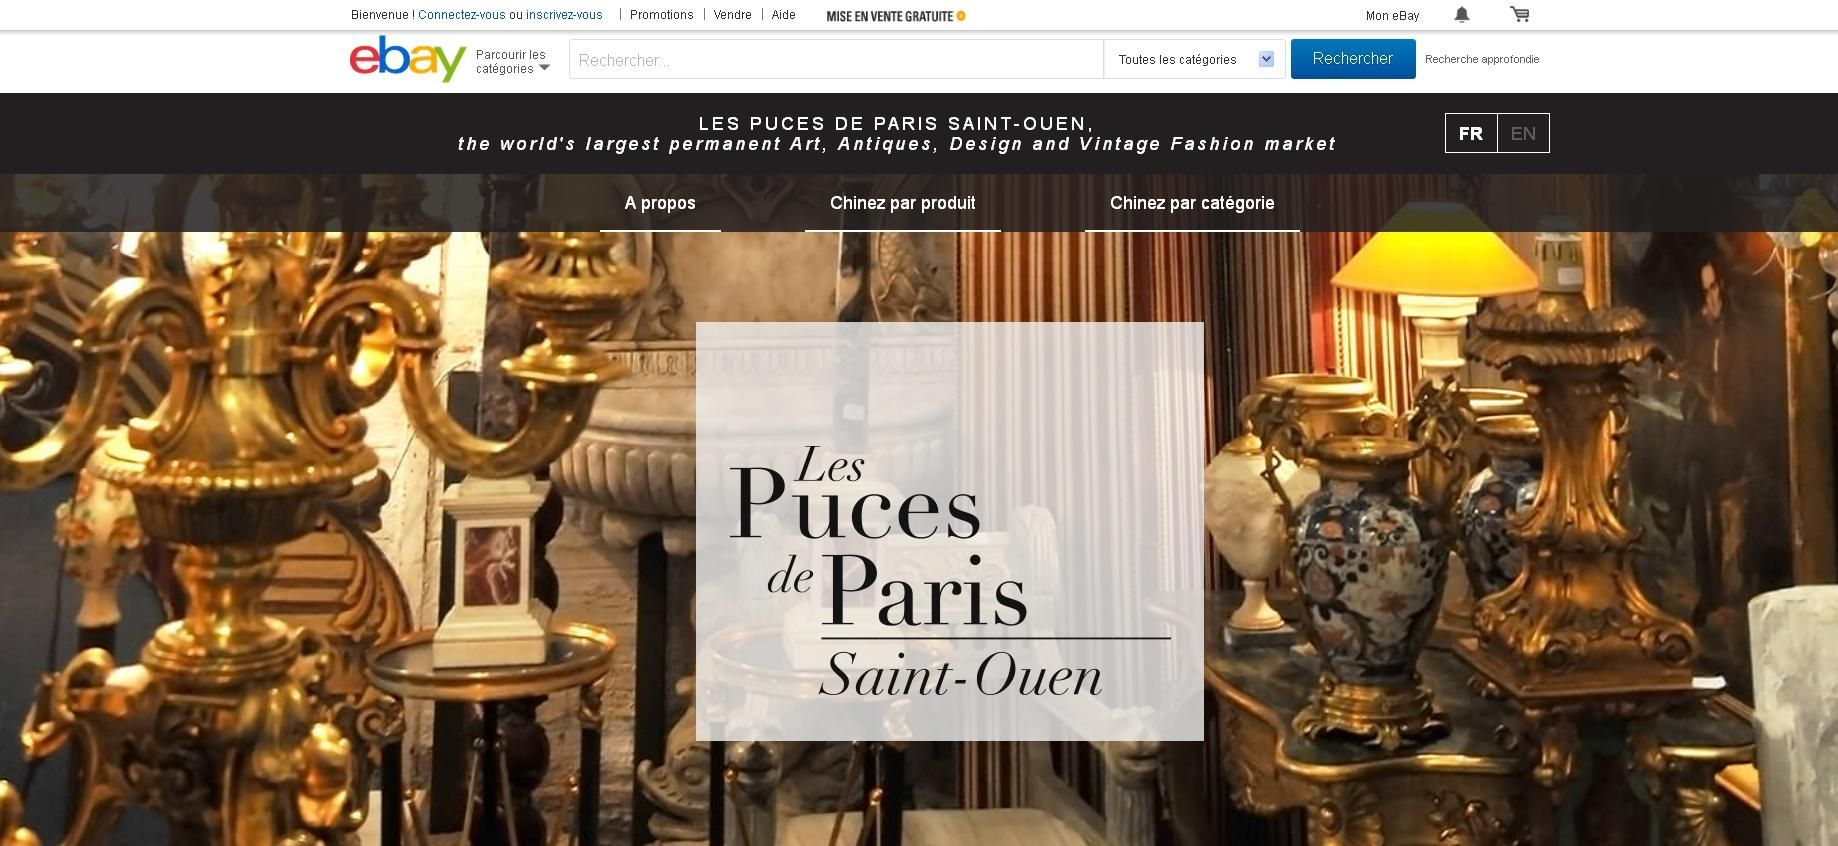 les puces de paris saint ouen s 39 ouvrent au monde sur ebay. Black Bedroom Furniture Sets. Home Design Ideas